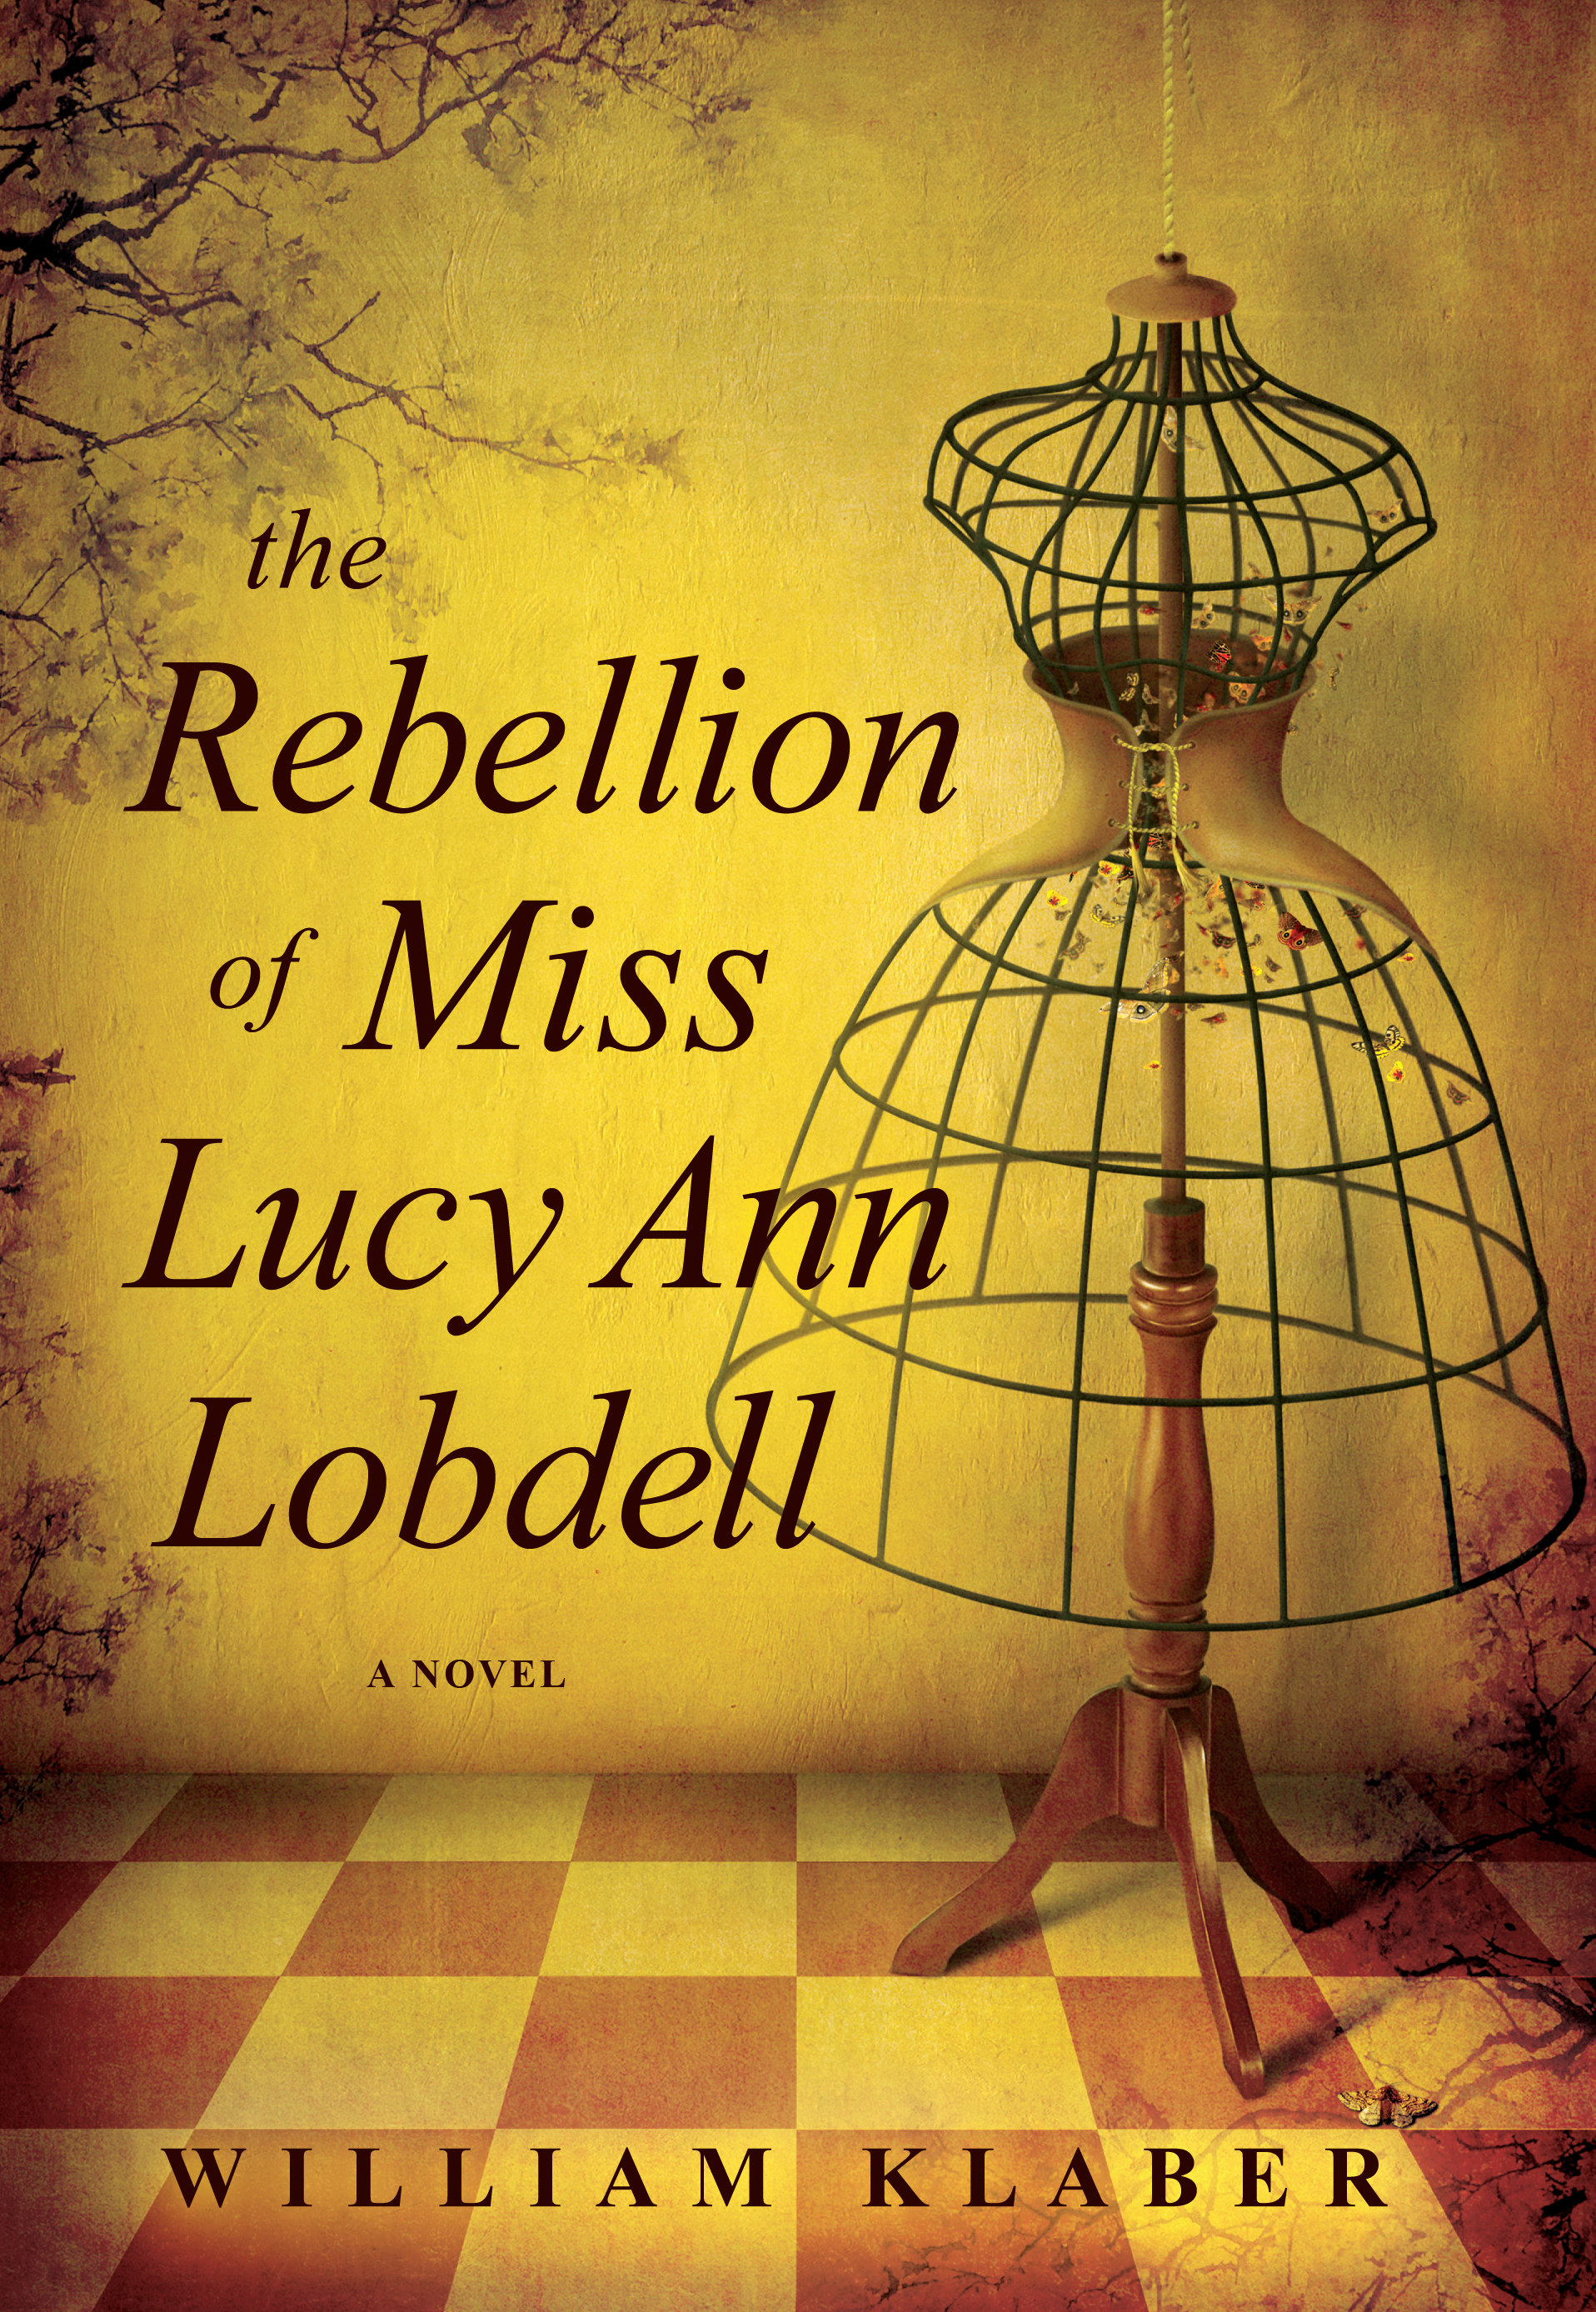 Image result for the rebellion of miss lucy ann lobdell